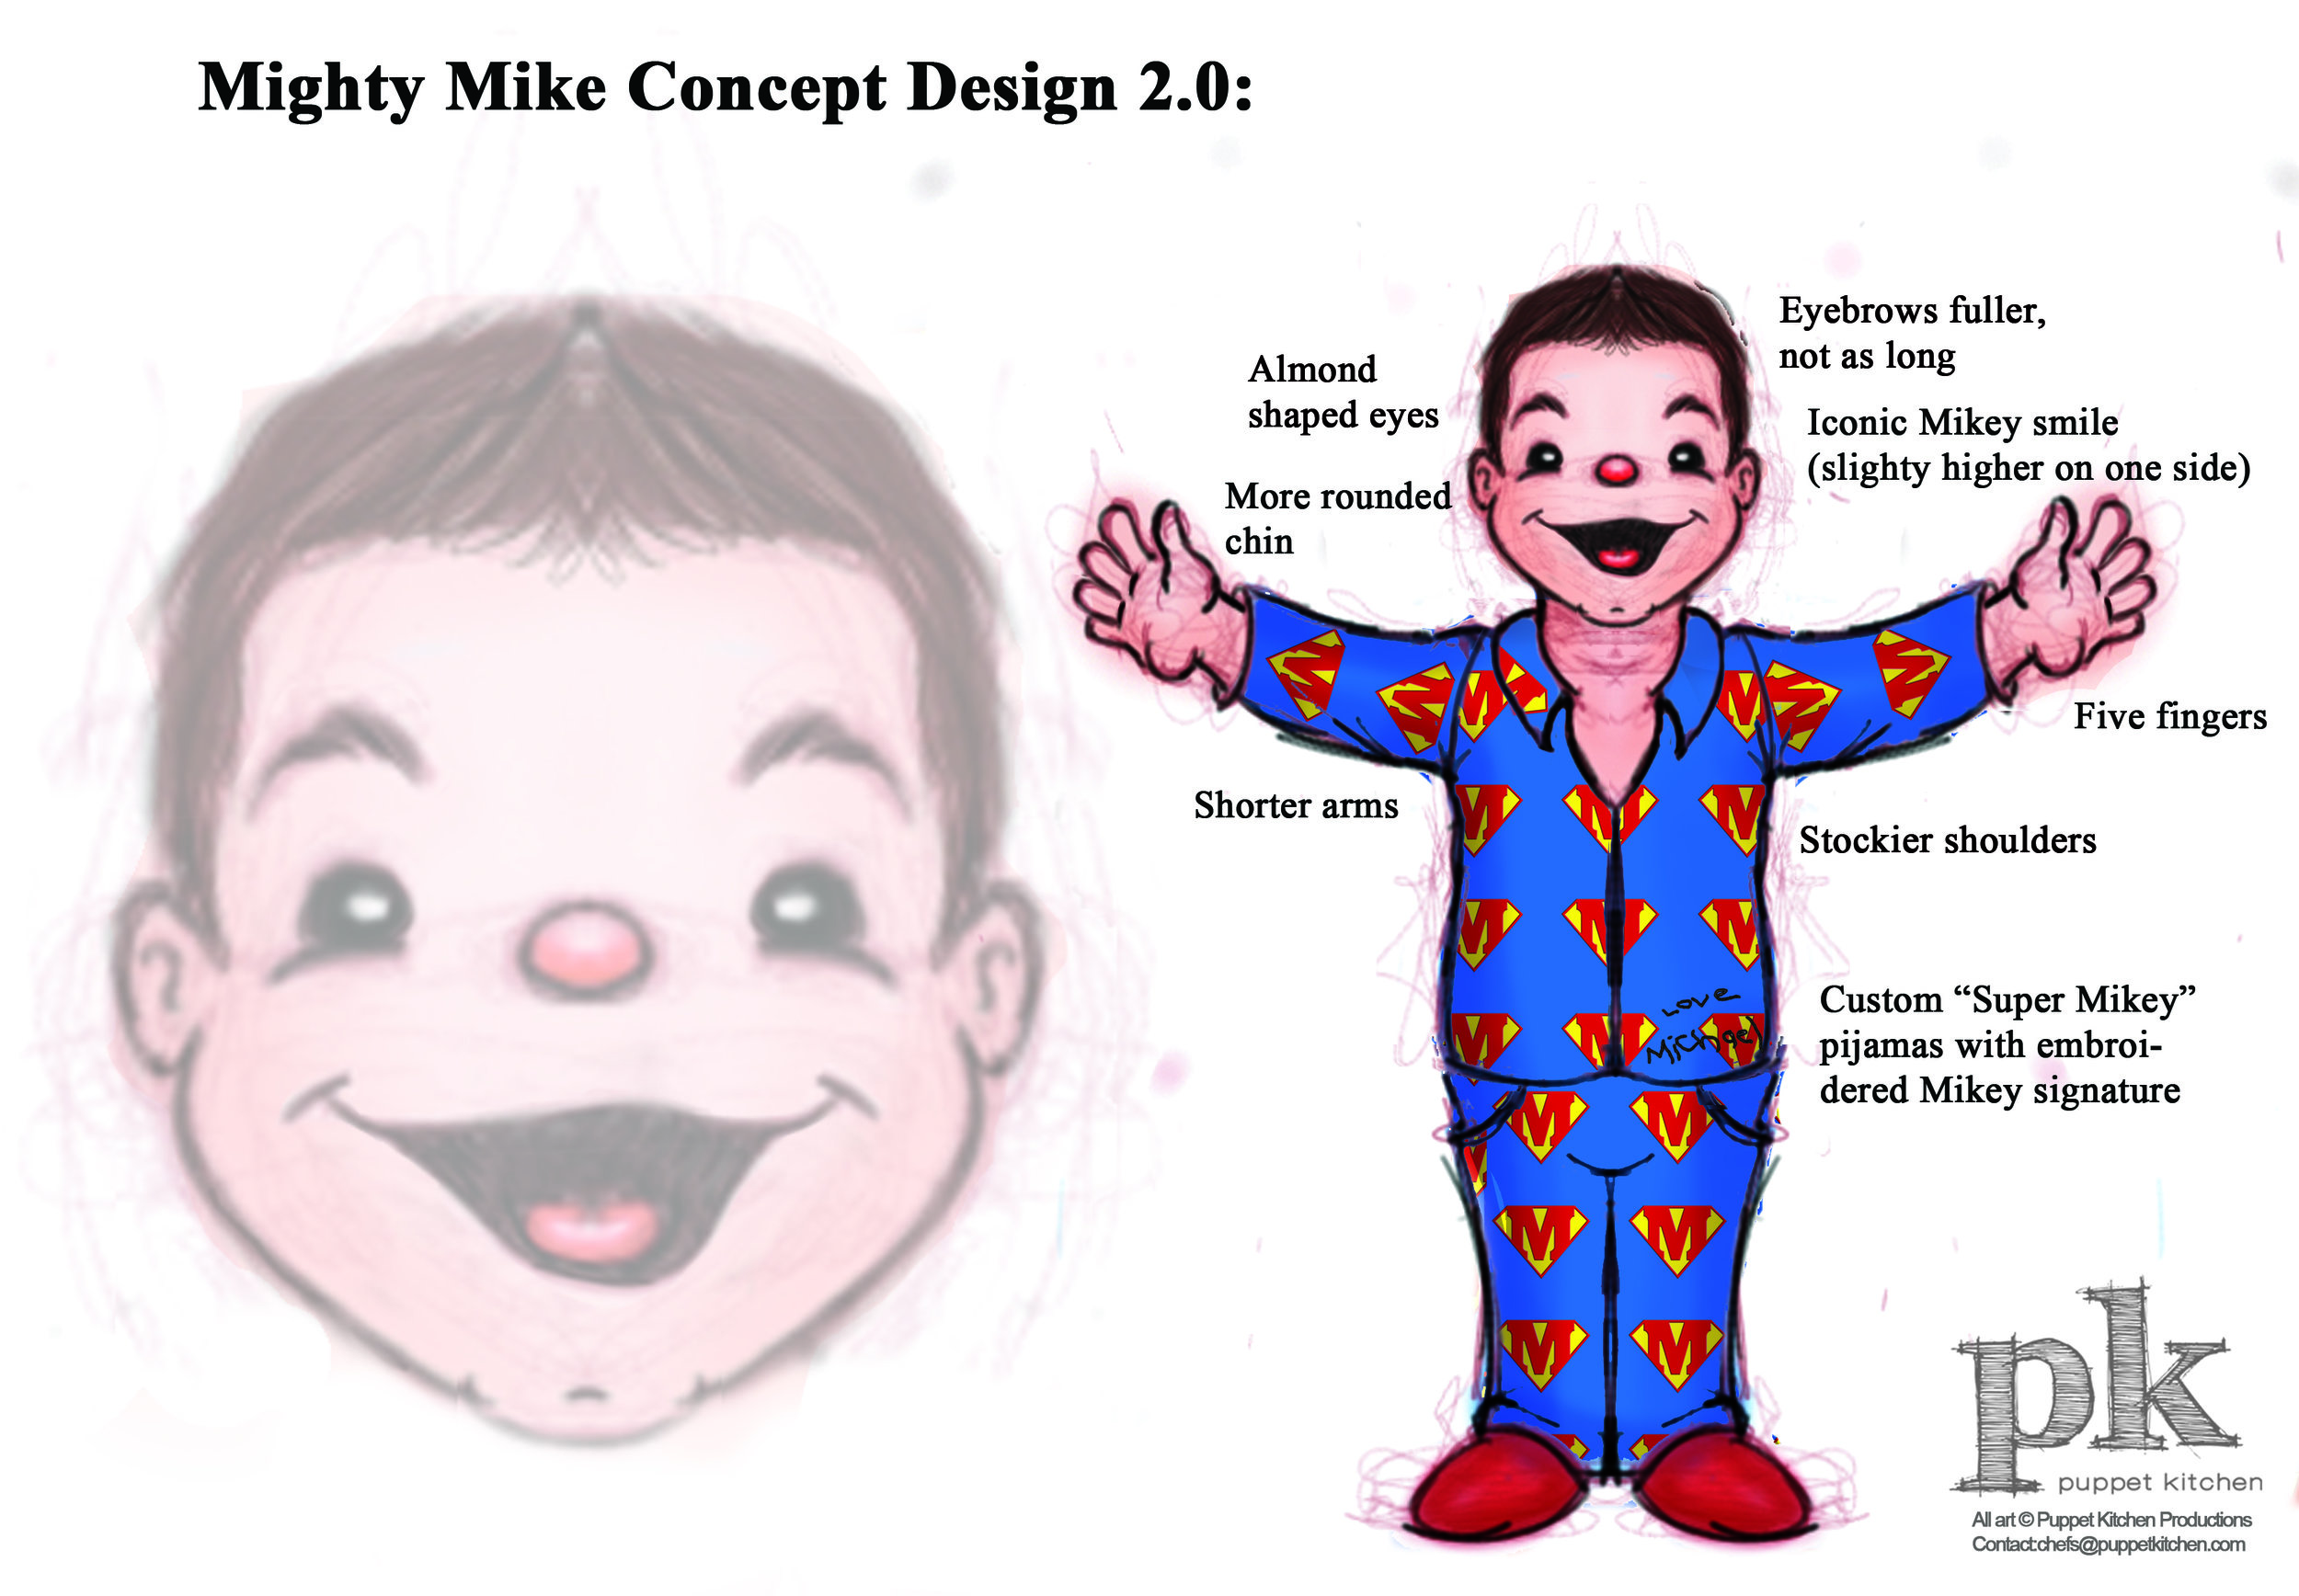 The Mighty Mikey Foundation: Character Design